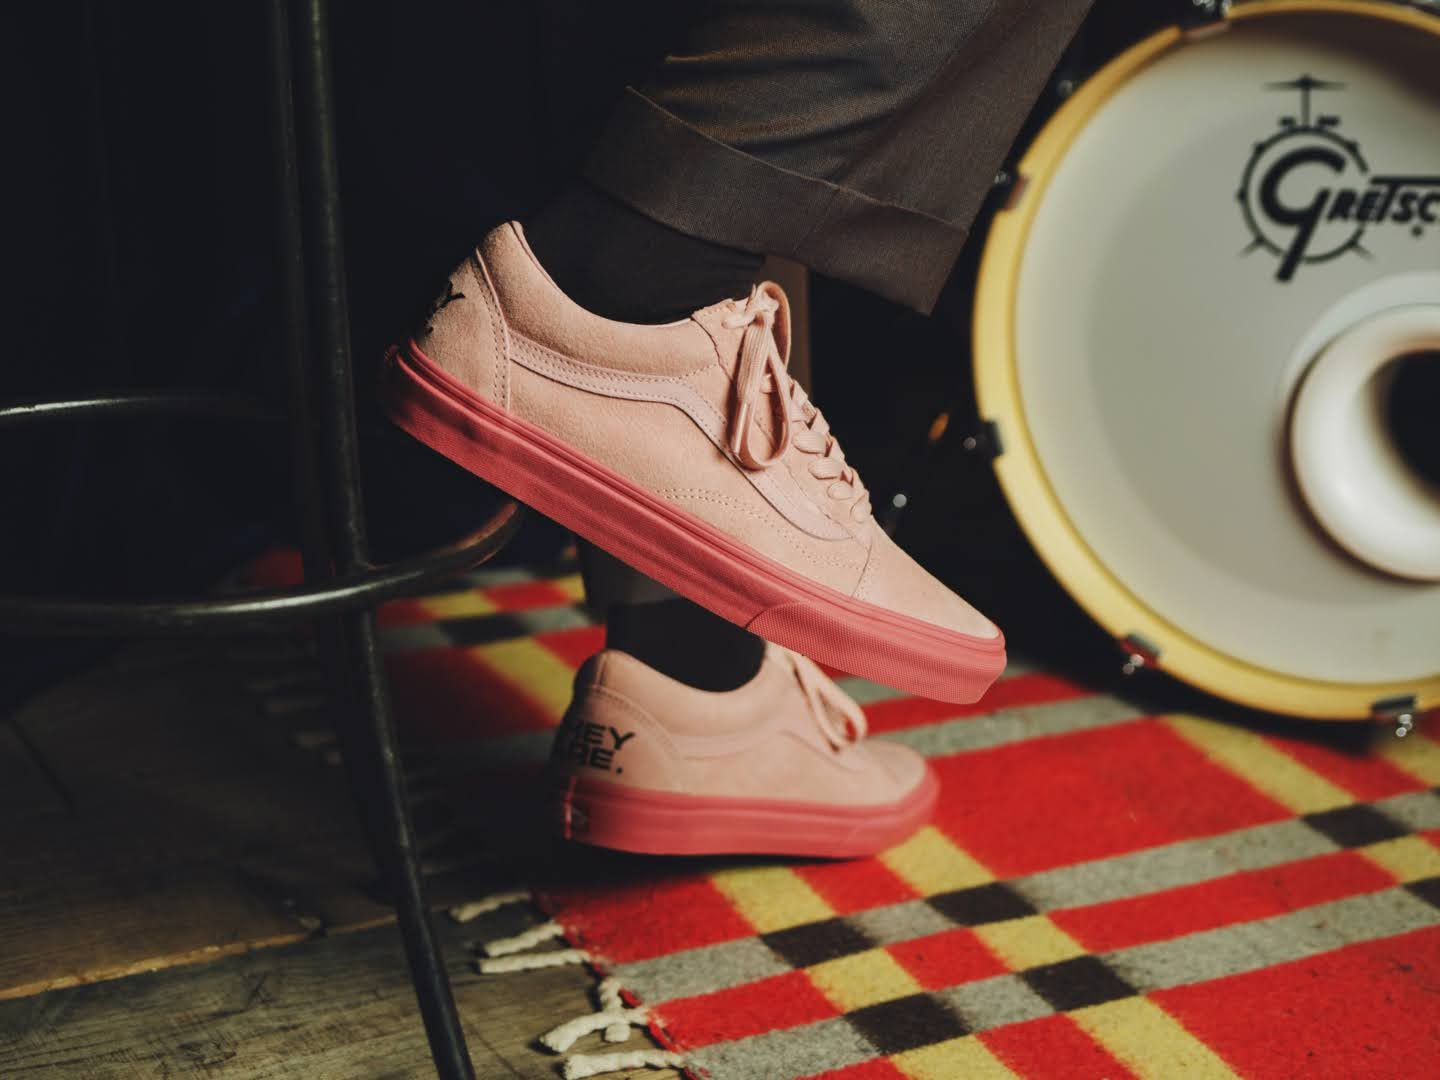 """VANS × THEY ARE """"THE YEAR OF THE OX"""" Collection】バンズ × ゼイ アー """"ザ イヤー オブ ザ OX"""" コレクション sneakers pink"""